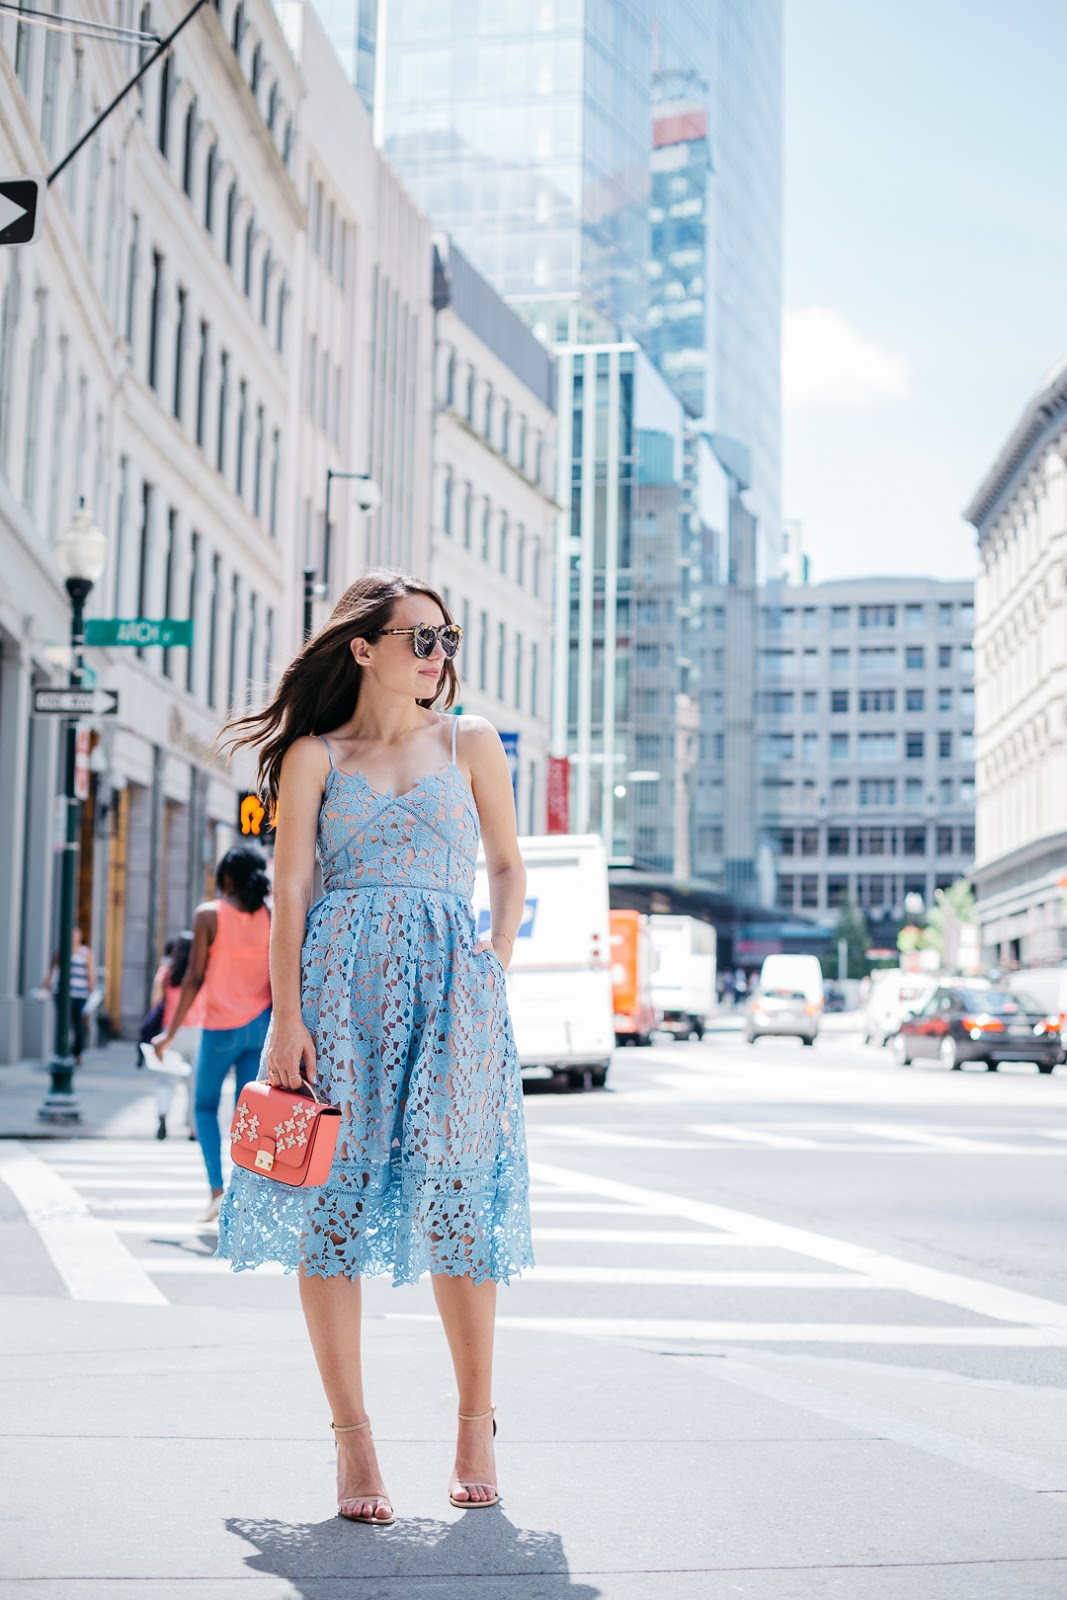 Event this summer? You need this pastel blue midi dress from SheIn